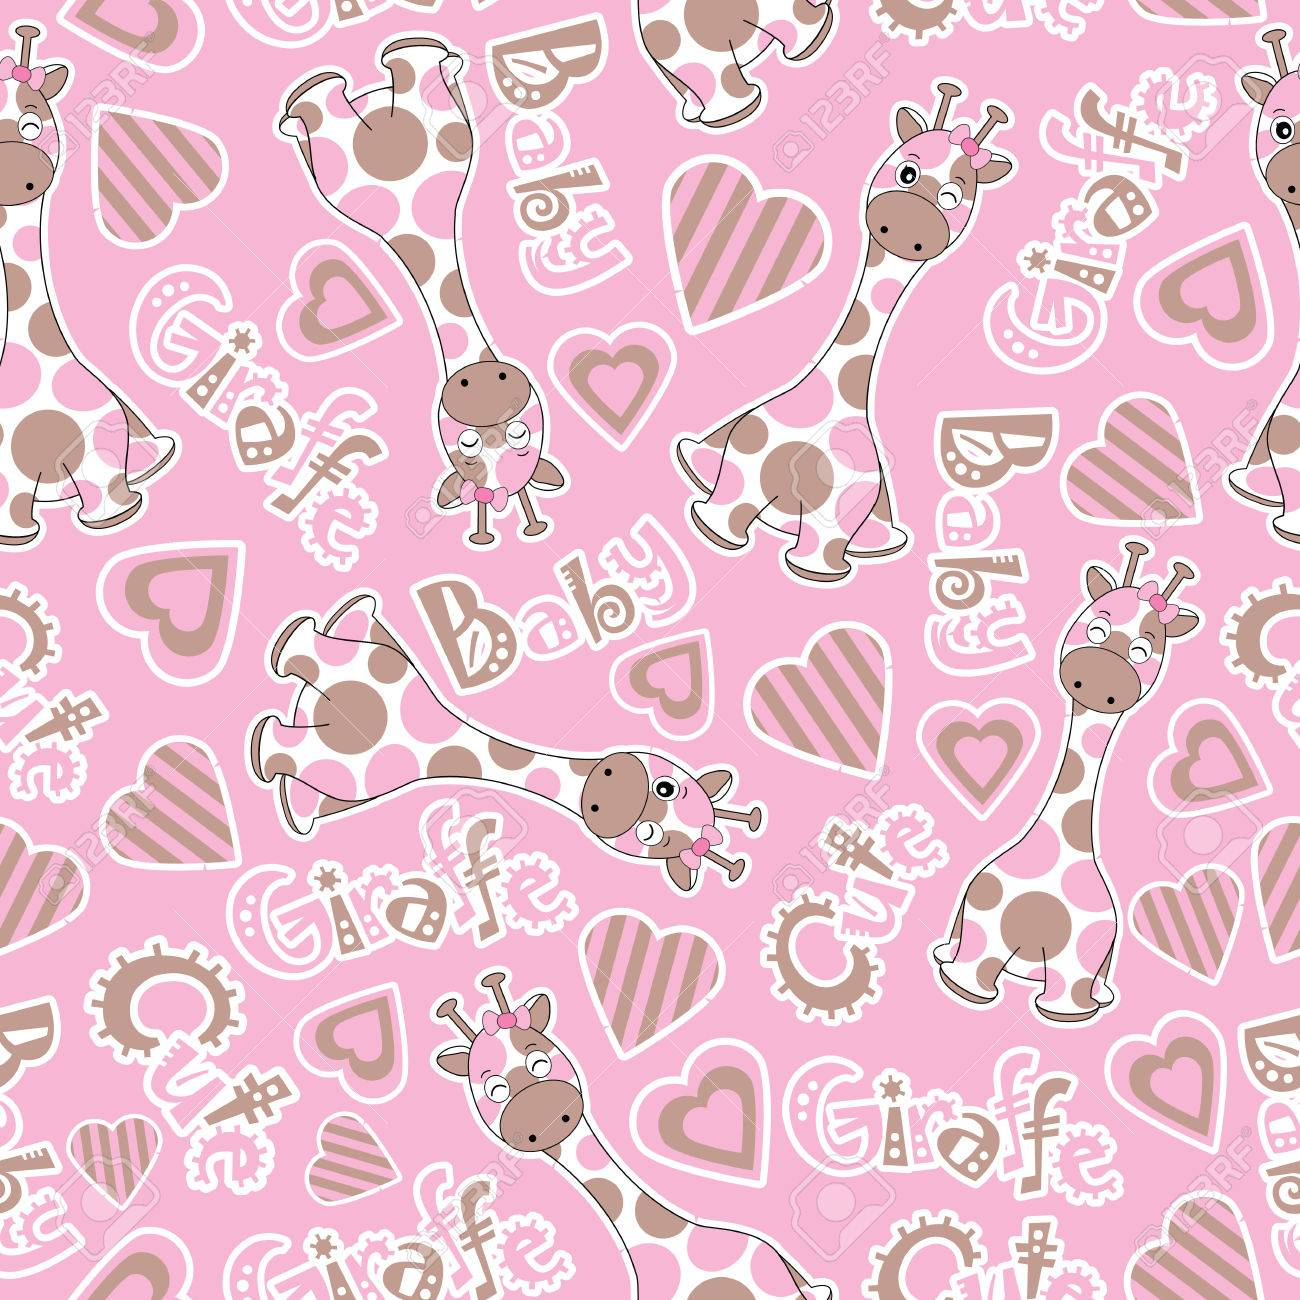 Baby Shower Seamless Pattern With Cute Baby Giraffe On Pink Background Royalty Free Cliparts Vectors And Stock Illustration Image 74551489